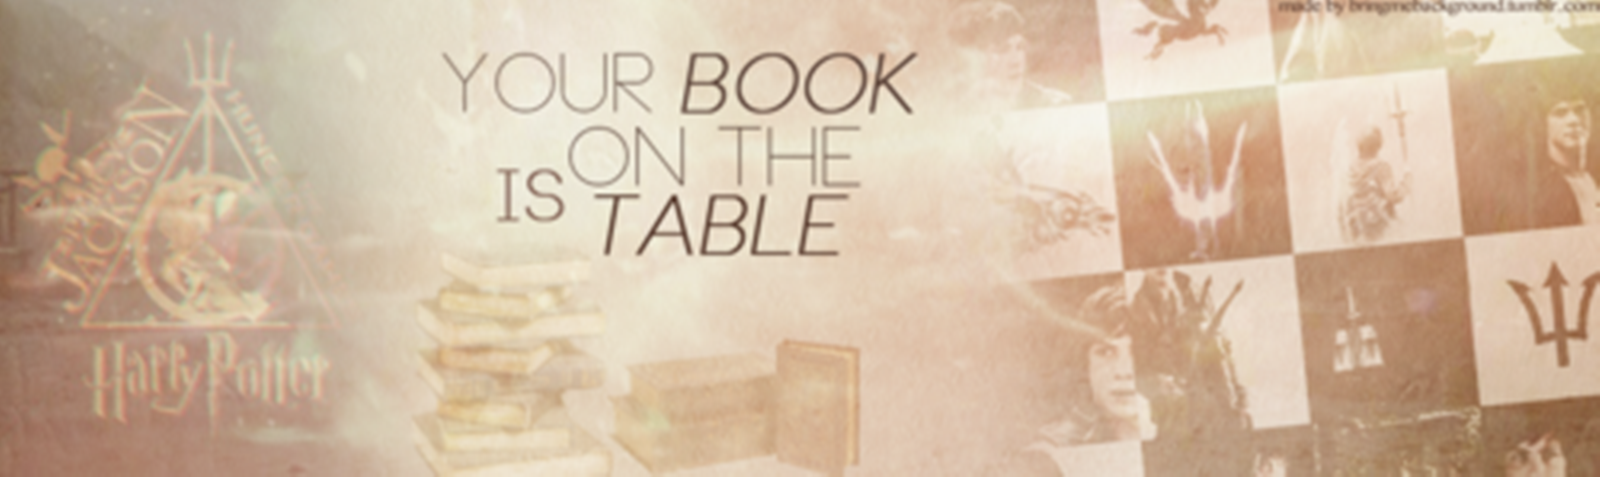 Your Book Is On The Table